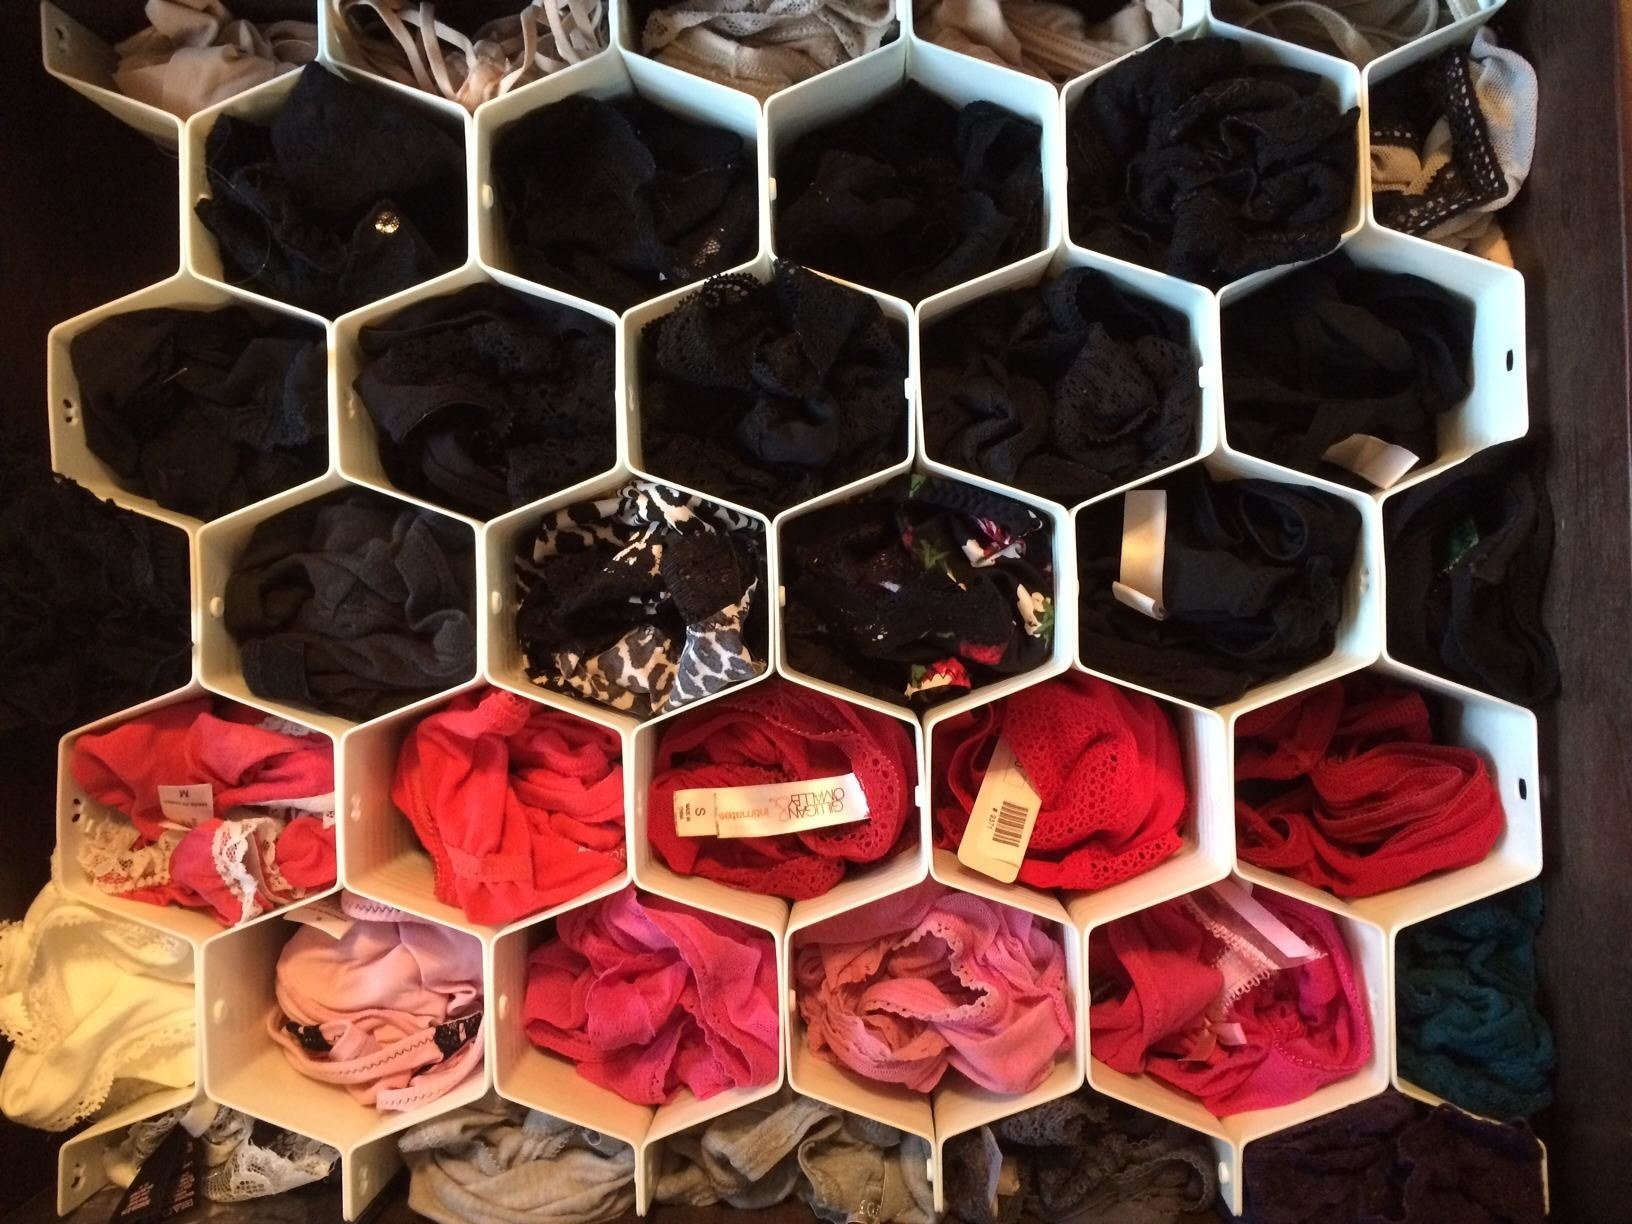 Reviewer's drawer with individual pairs of underwear tucked into the honeycomb organizer